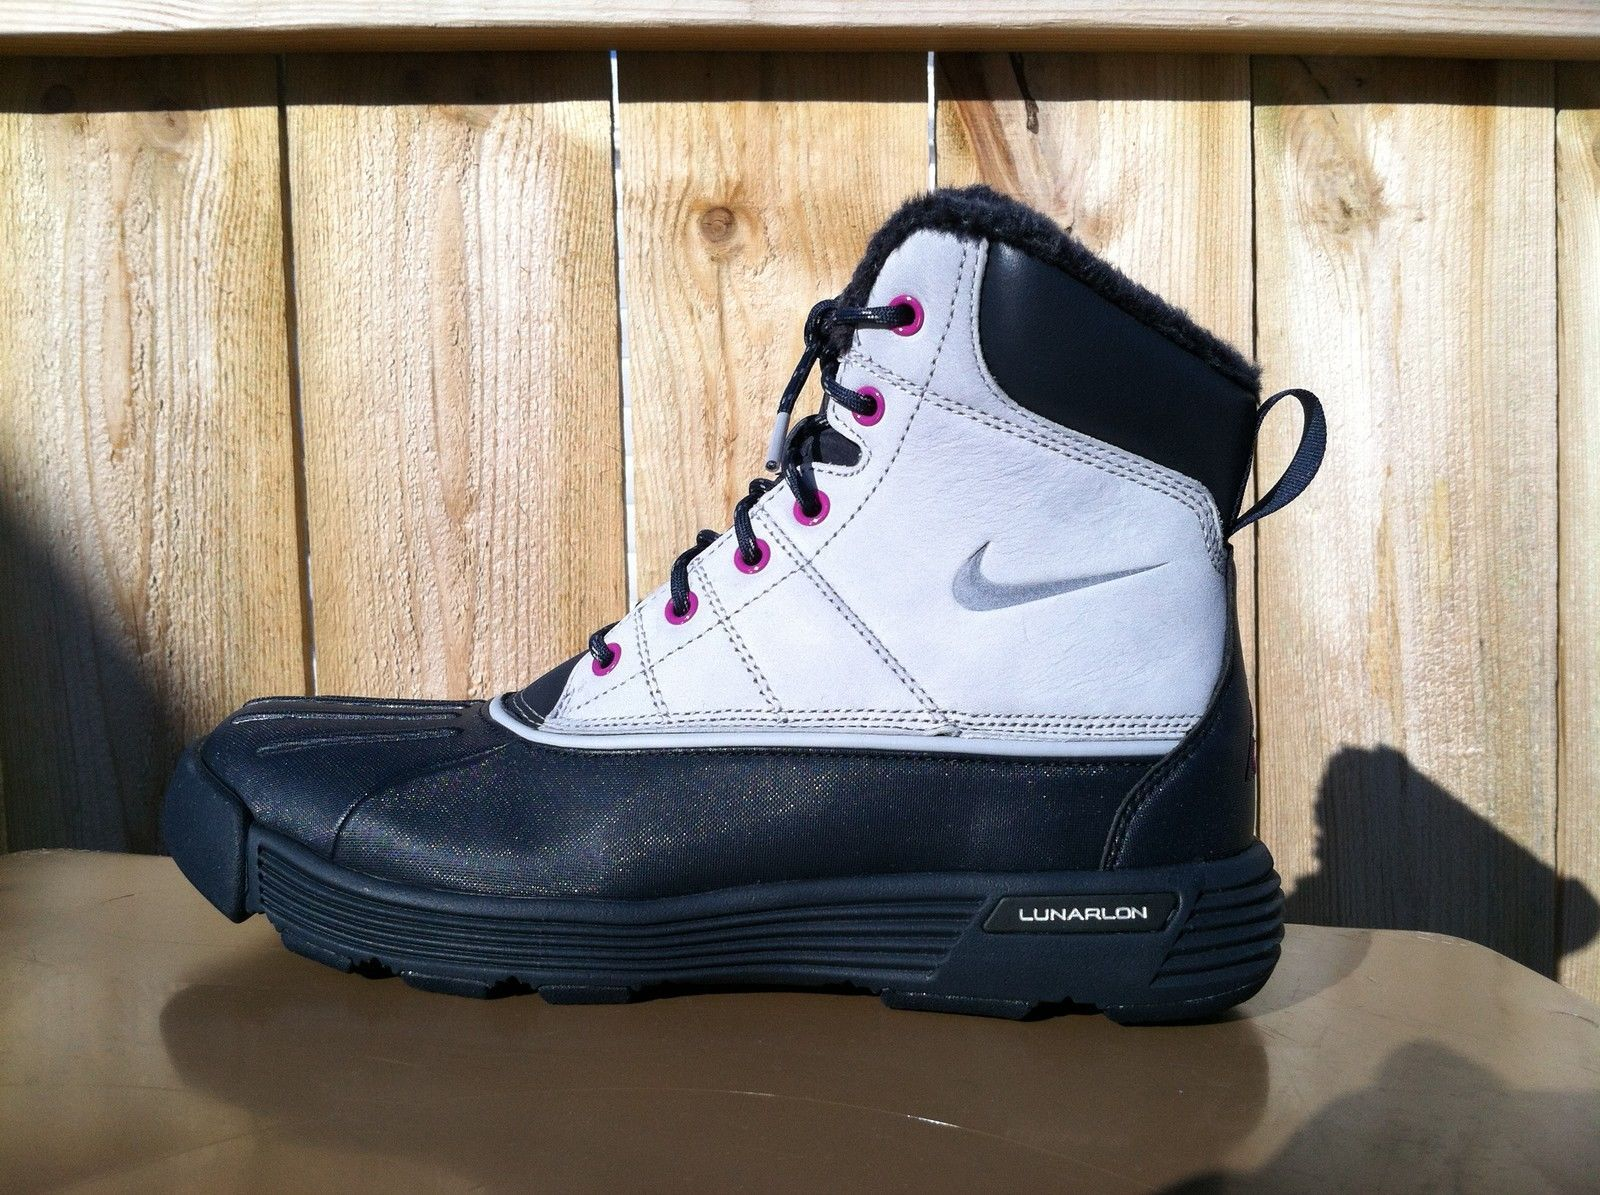 NEW WOMENS NIKE ACG LUNARSTORM WATERSHIELD BOOTS-WINTER-HIKING-CASUAL-SIZE 7